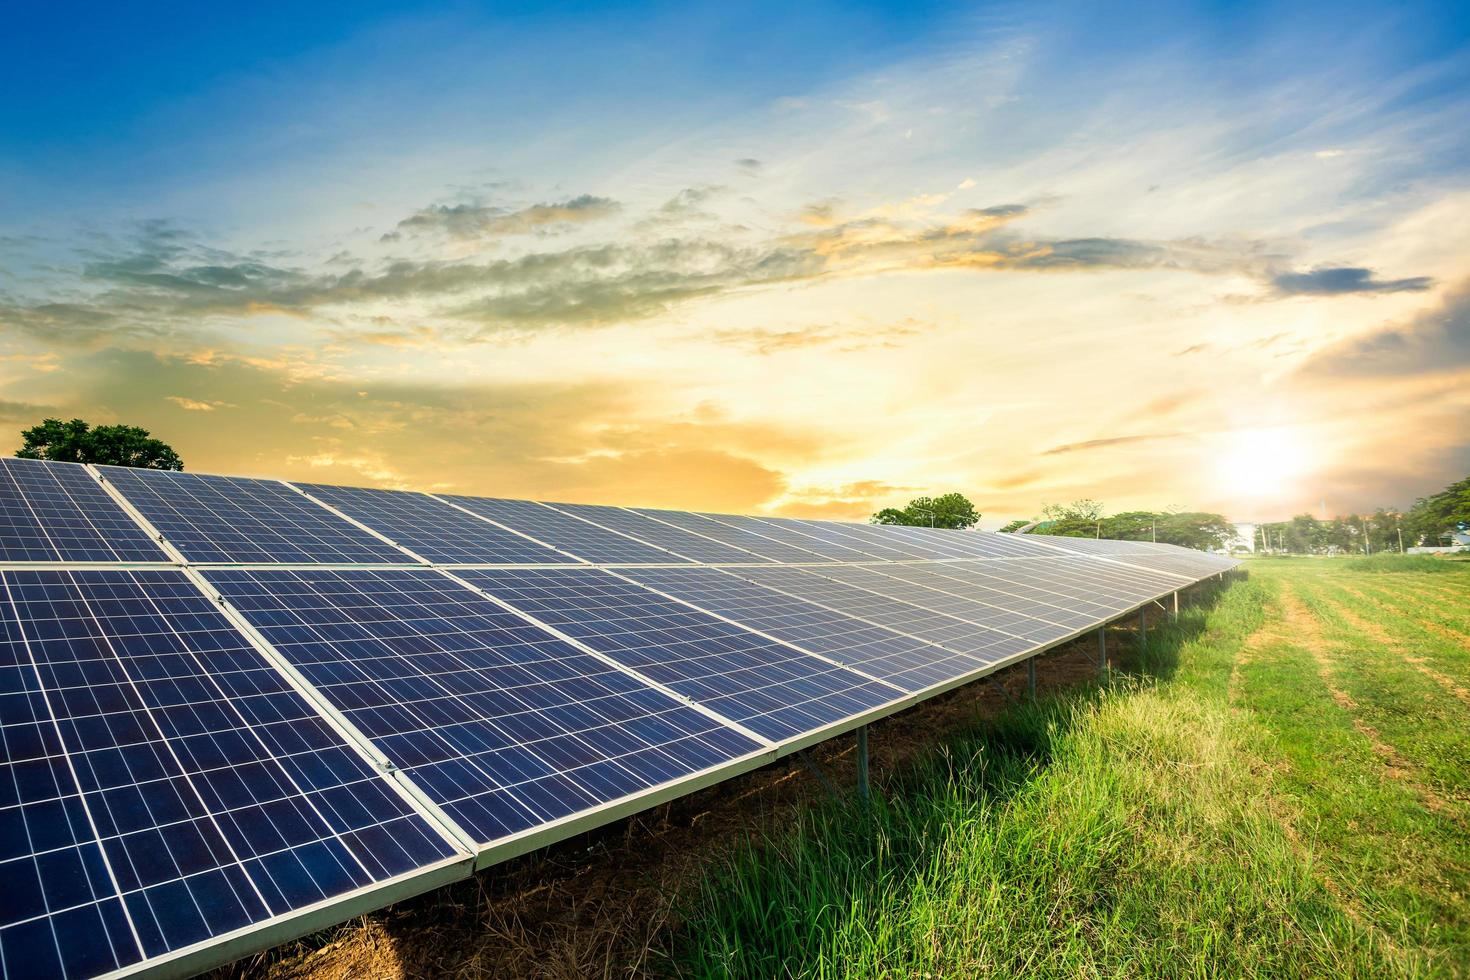 Solar panel cell on dramatic sunset sky background photo